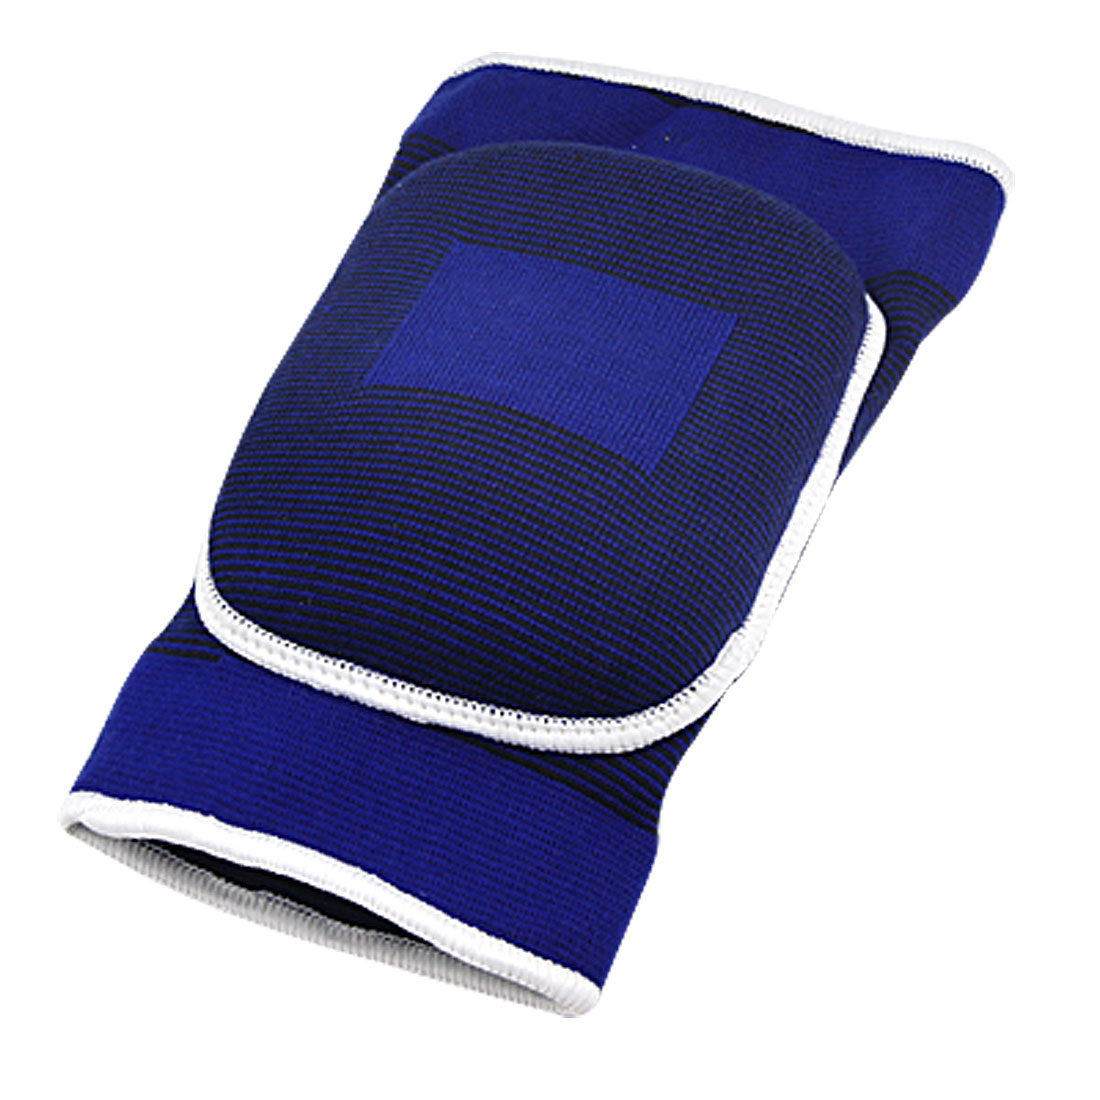 Athletic Blue Black Stretchy Sleeves Brace Knee Pad Support